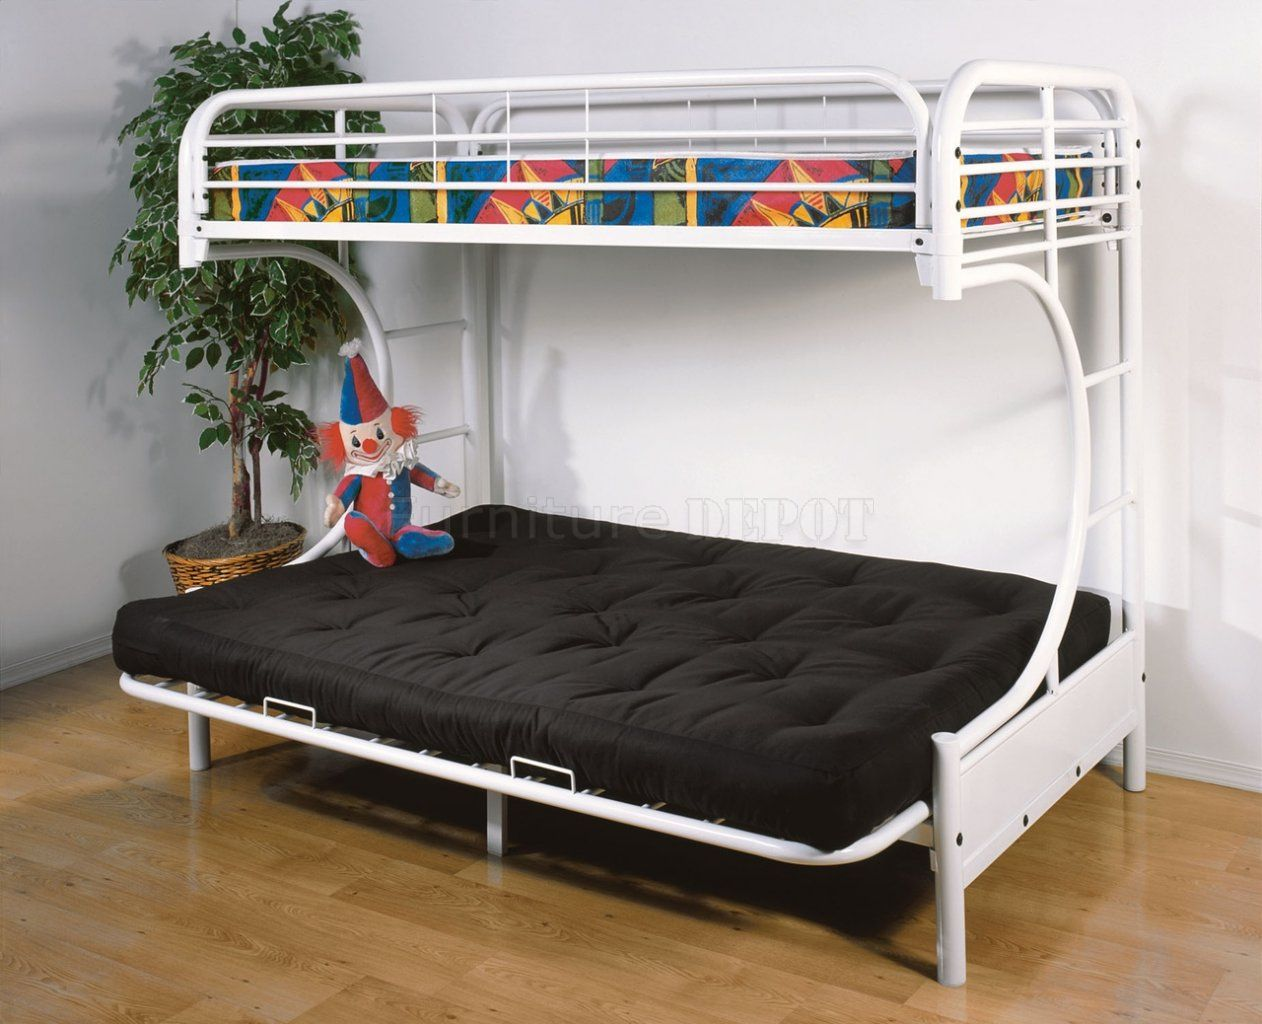 Bunk Beds With A Futon On The Bottom Interior Paint Colors 2017 Check More At